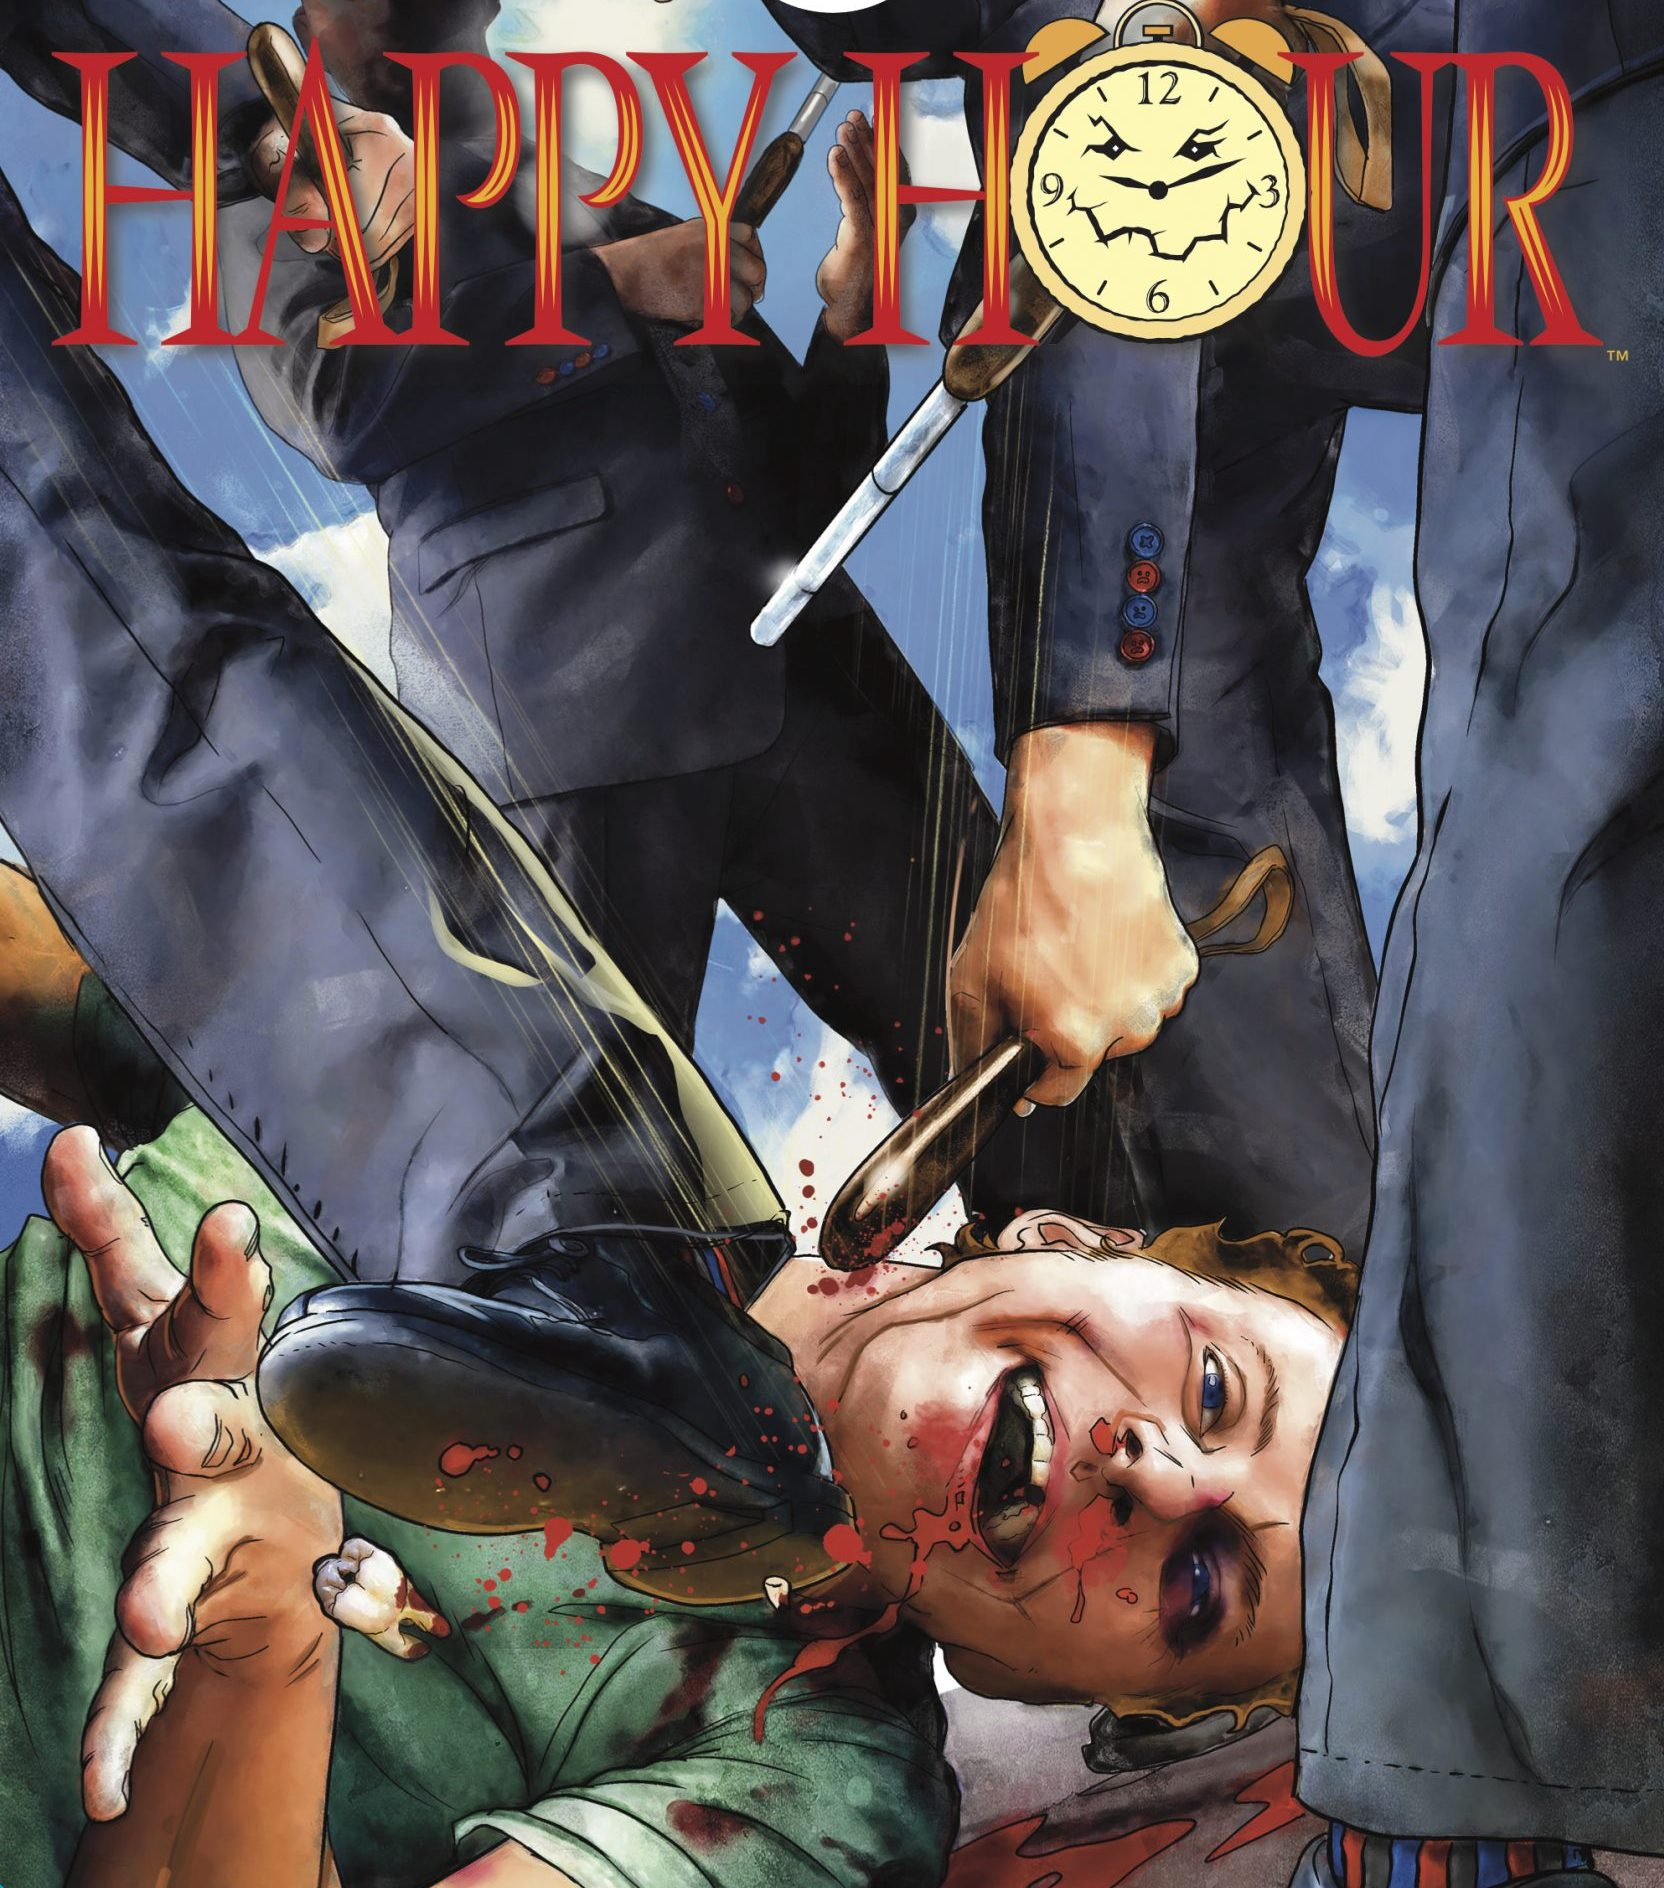 'Happy Hour' #1 review